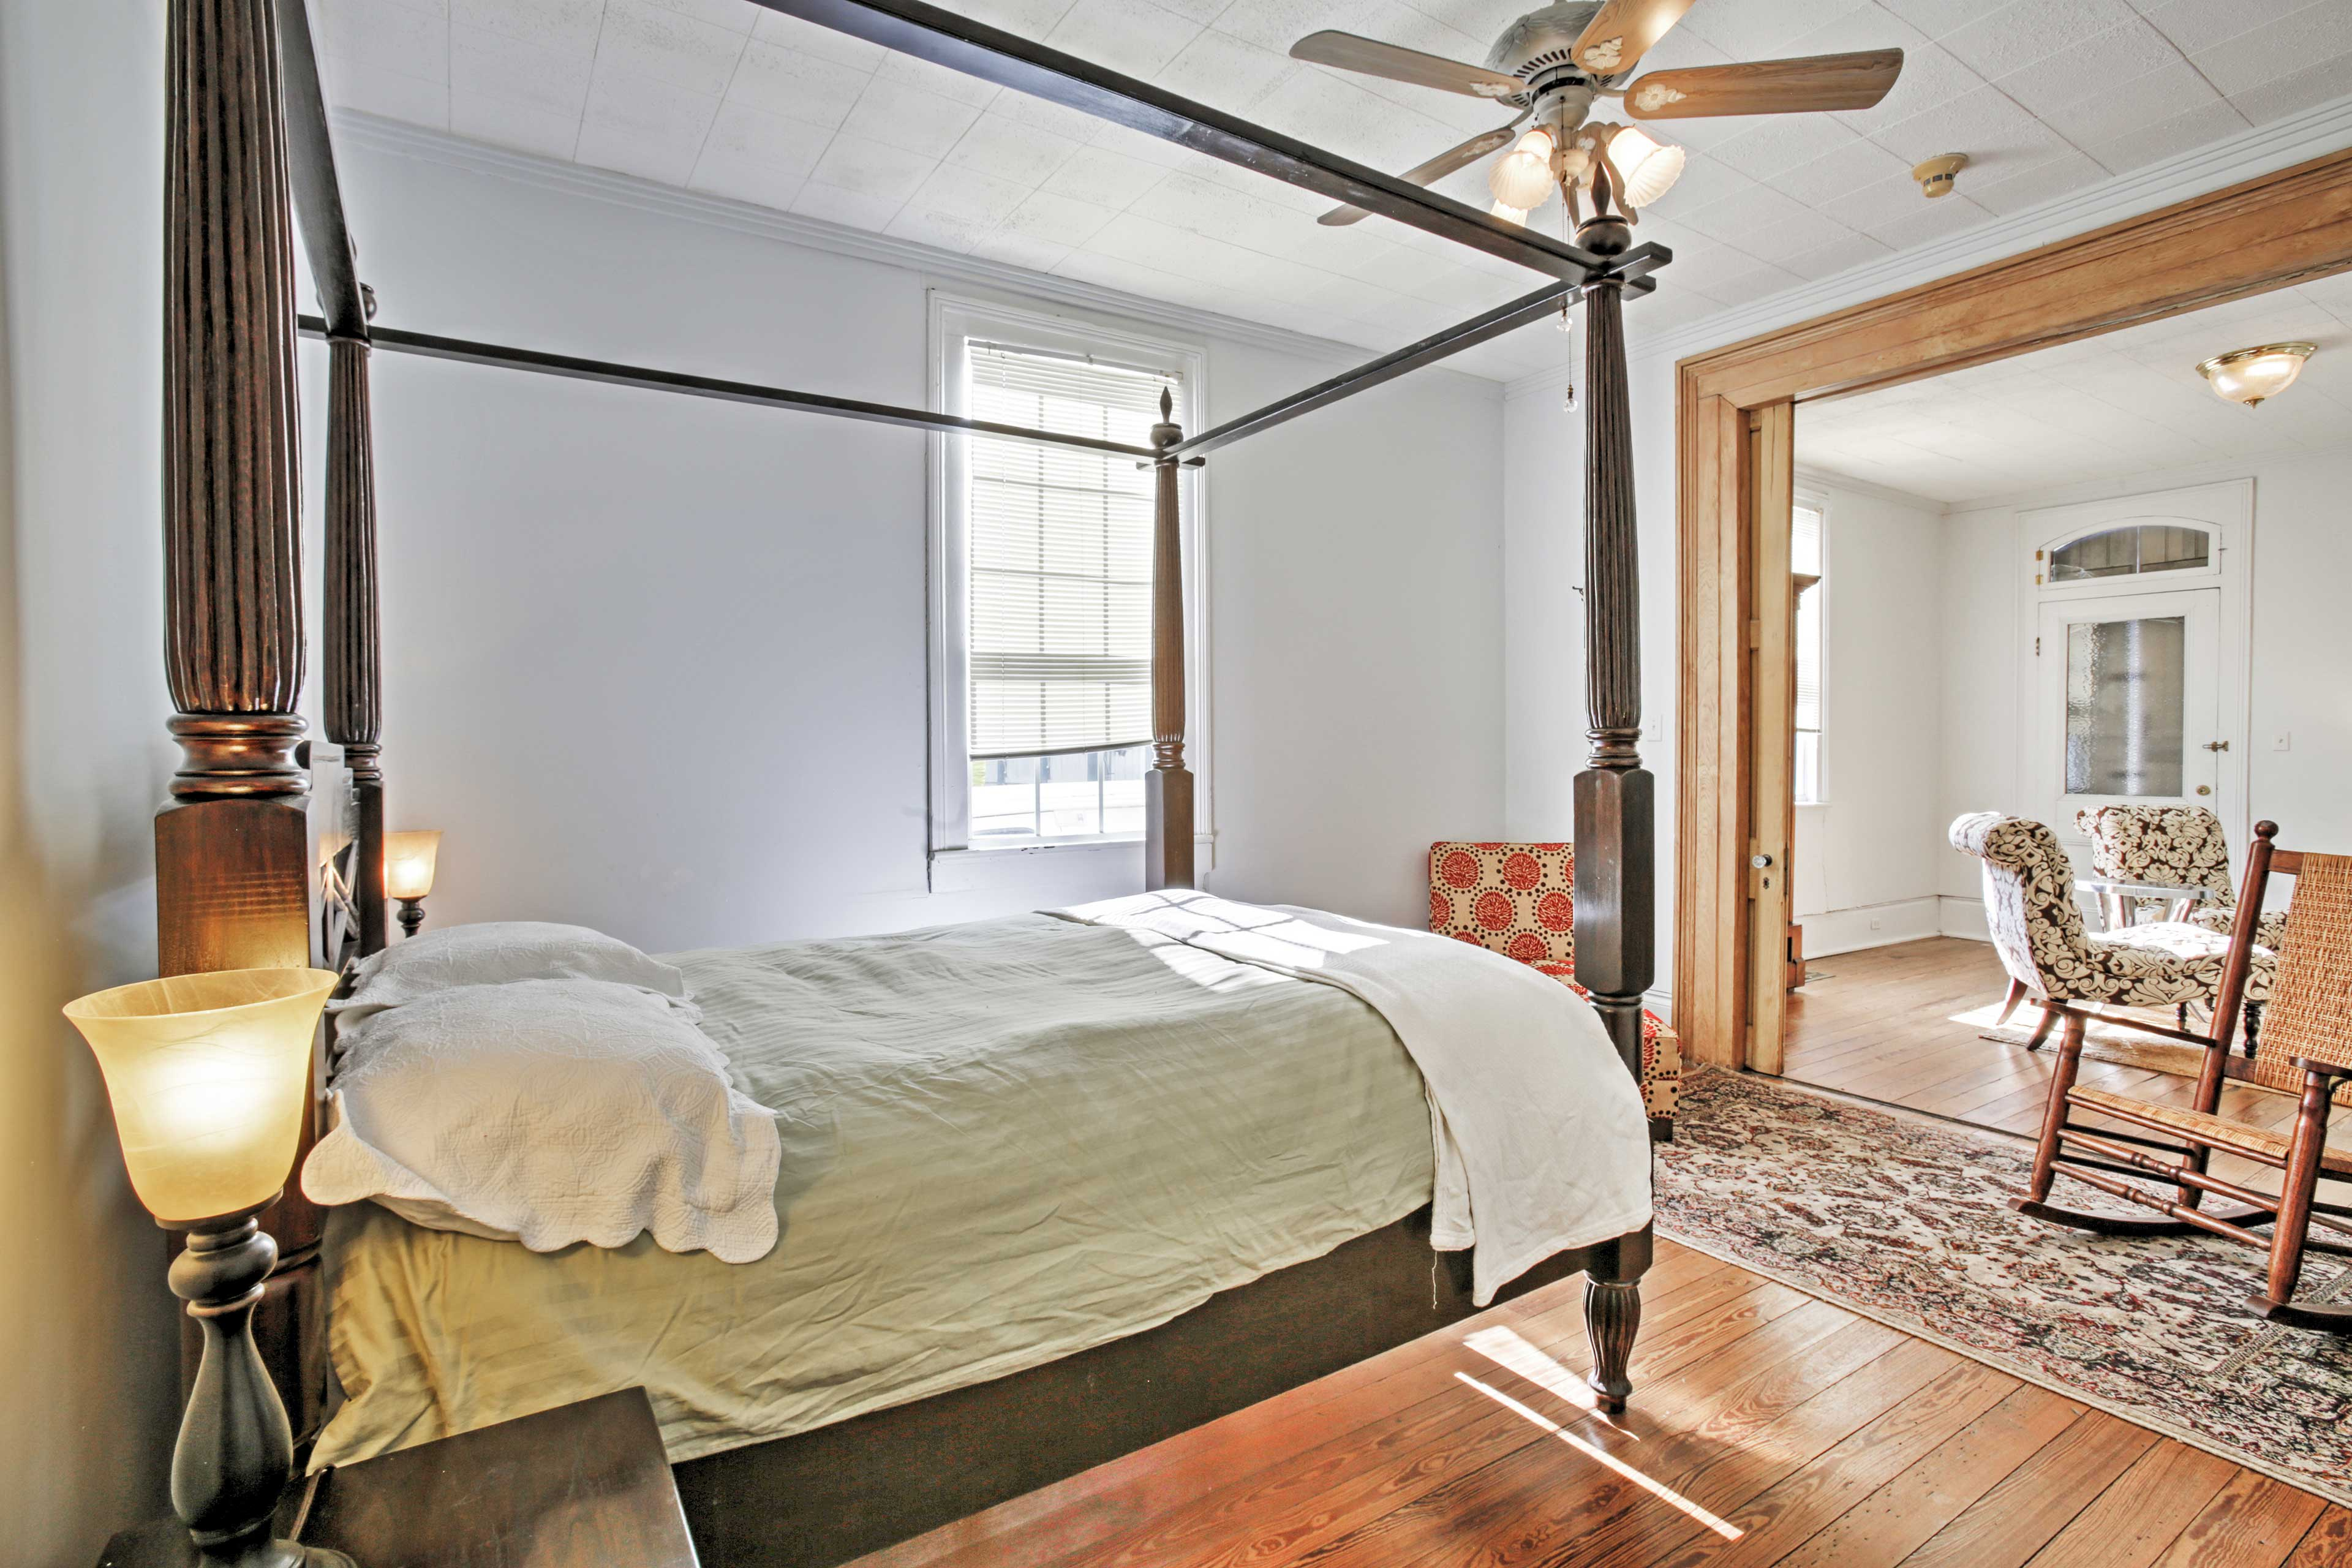 The master bedroom offers ample space to relax.